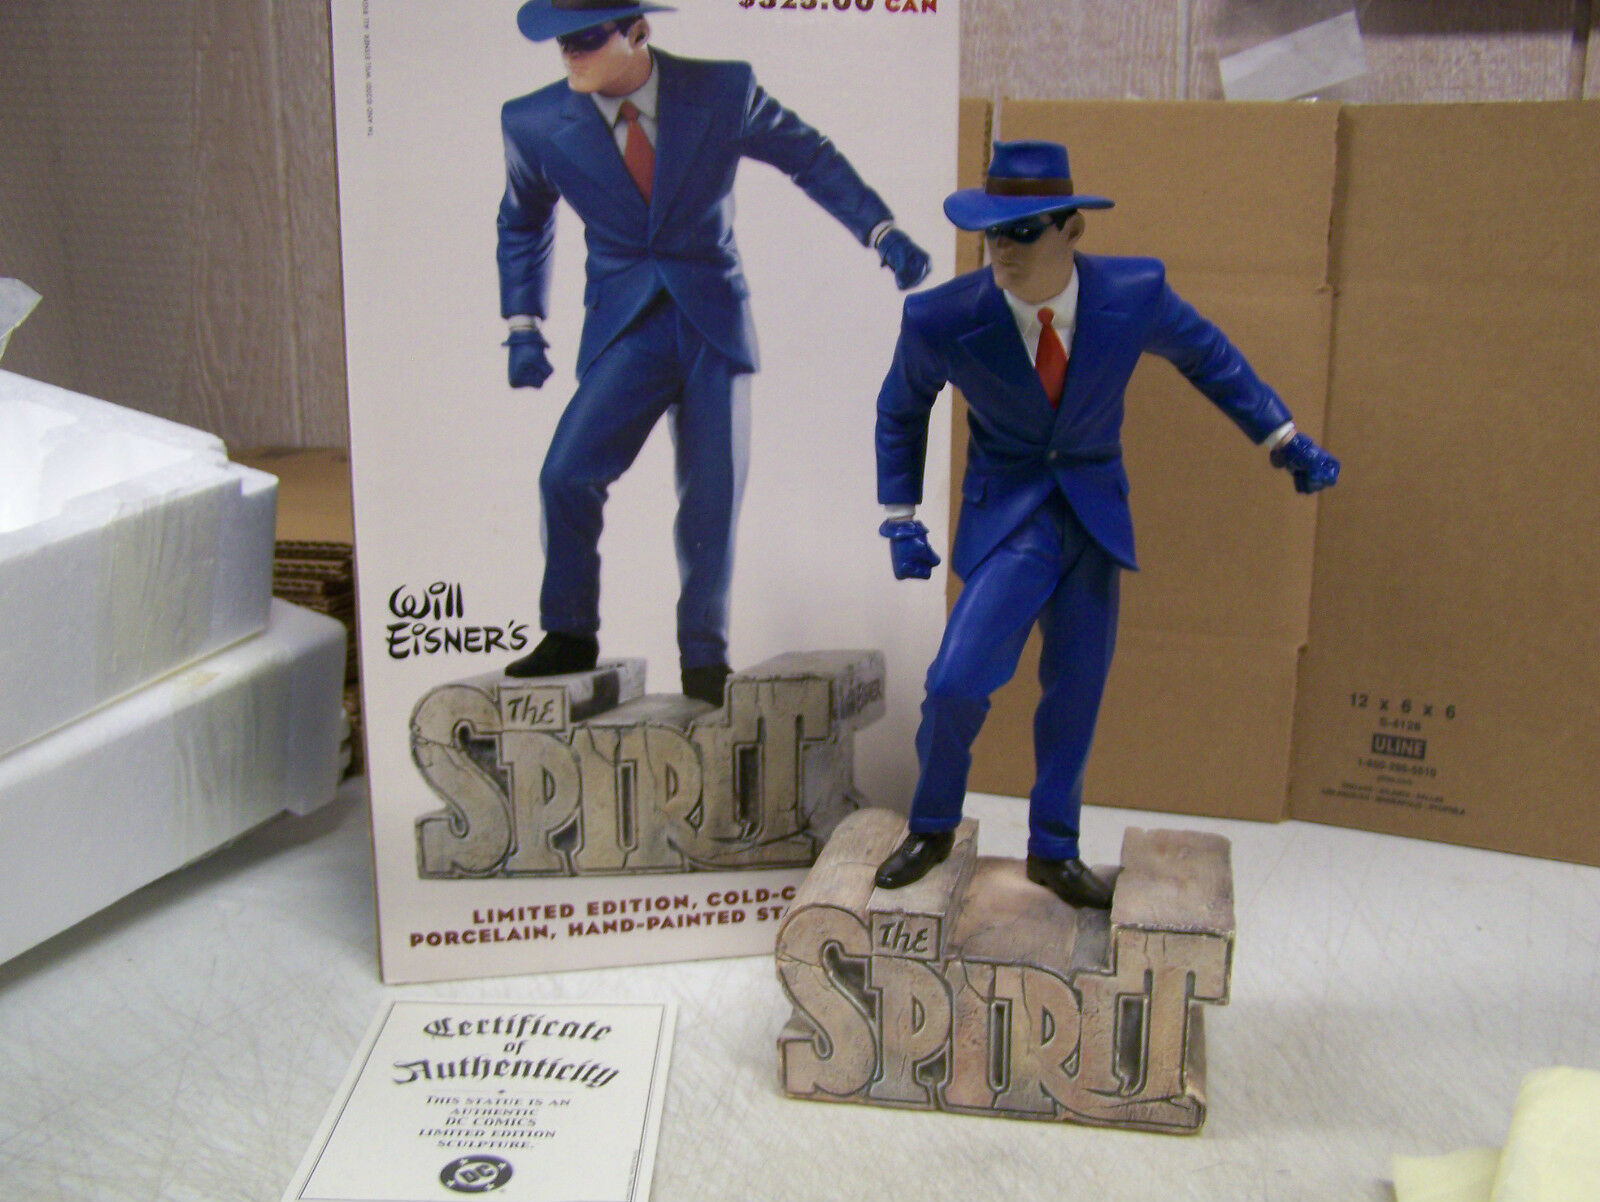 Will Eisners DC Direct Cold Cast Porcelain Figurine  THE SPIRIT - In bluee Suit